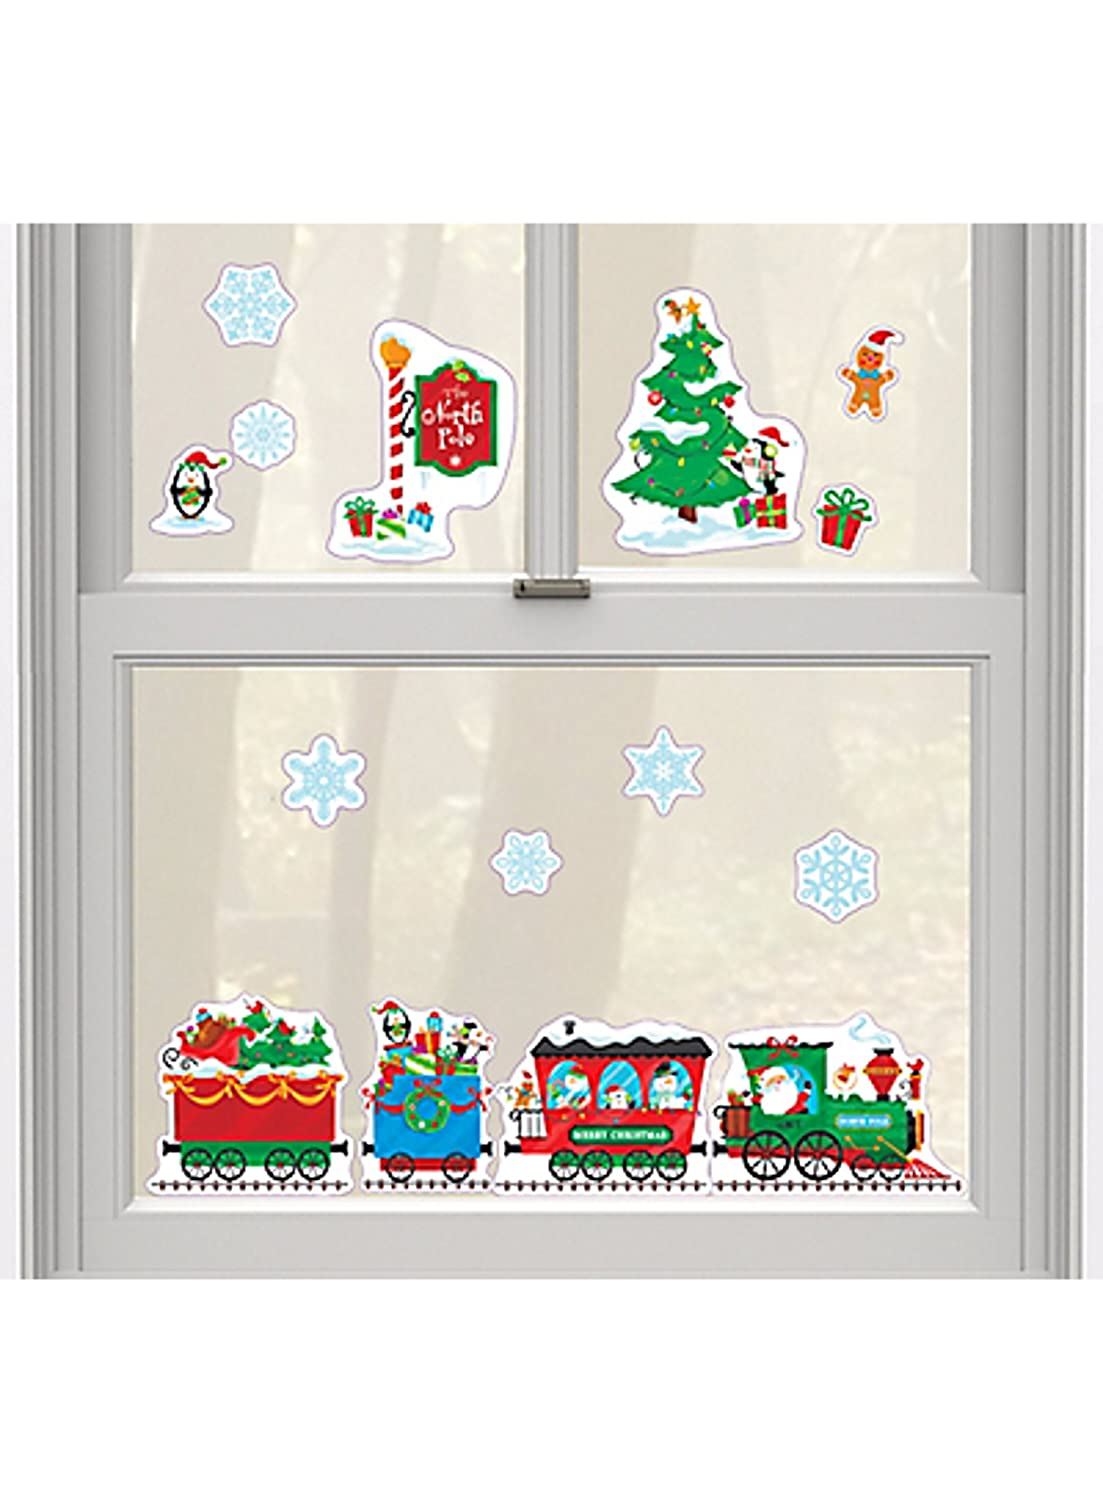 Merry Christmas Window Clings ~ North Pole Train, Snowflakes, Penguins, Gingerbread Men (1 Sheet, 15 Clings)